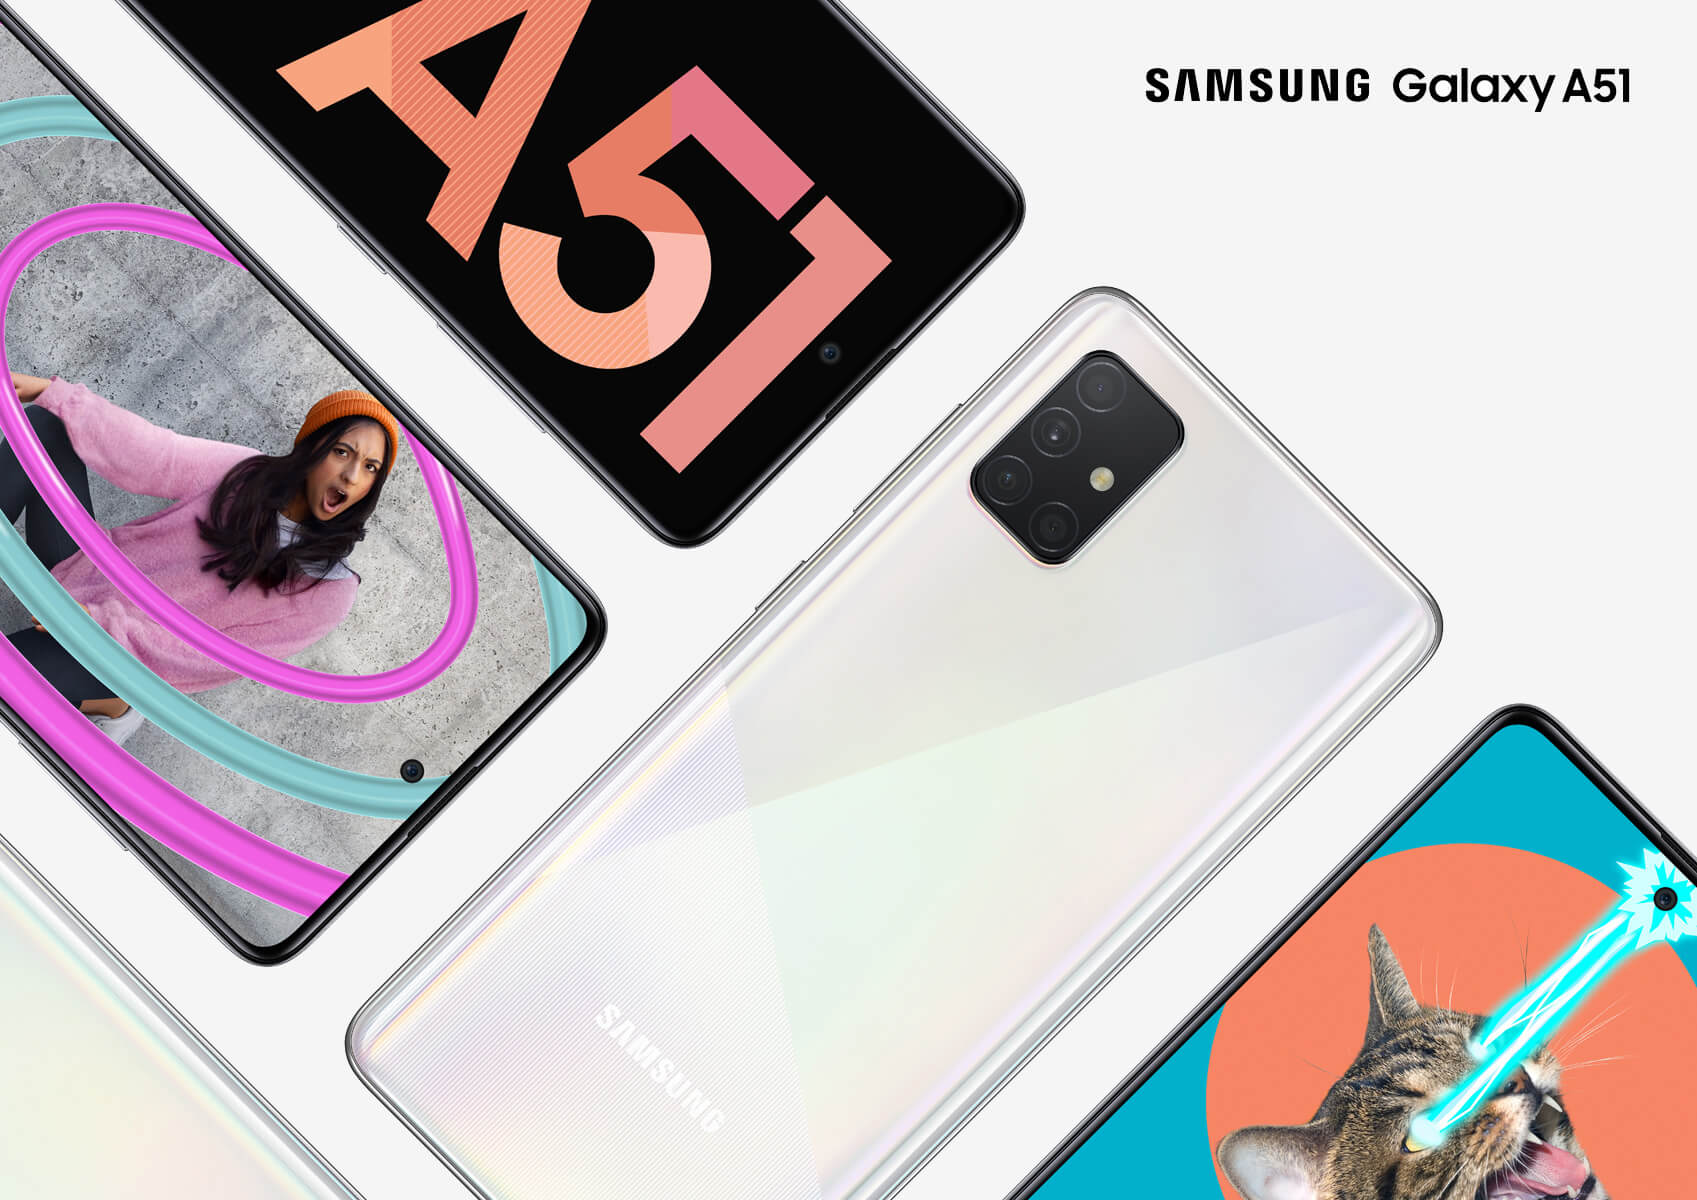 Samsung's answer to the iPhone SE is the $399 Galaxy A51